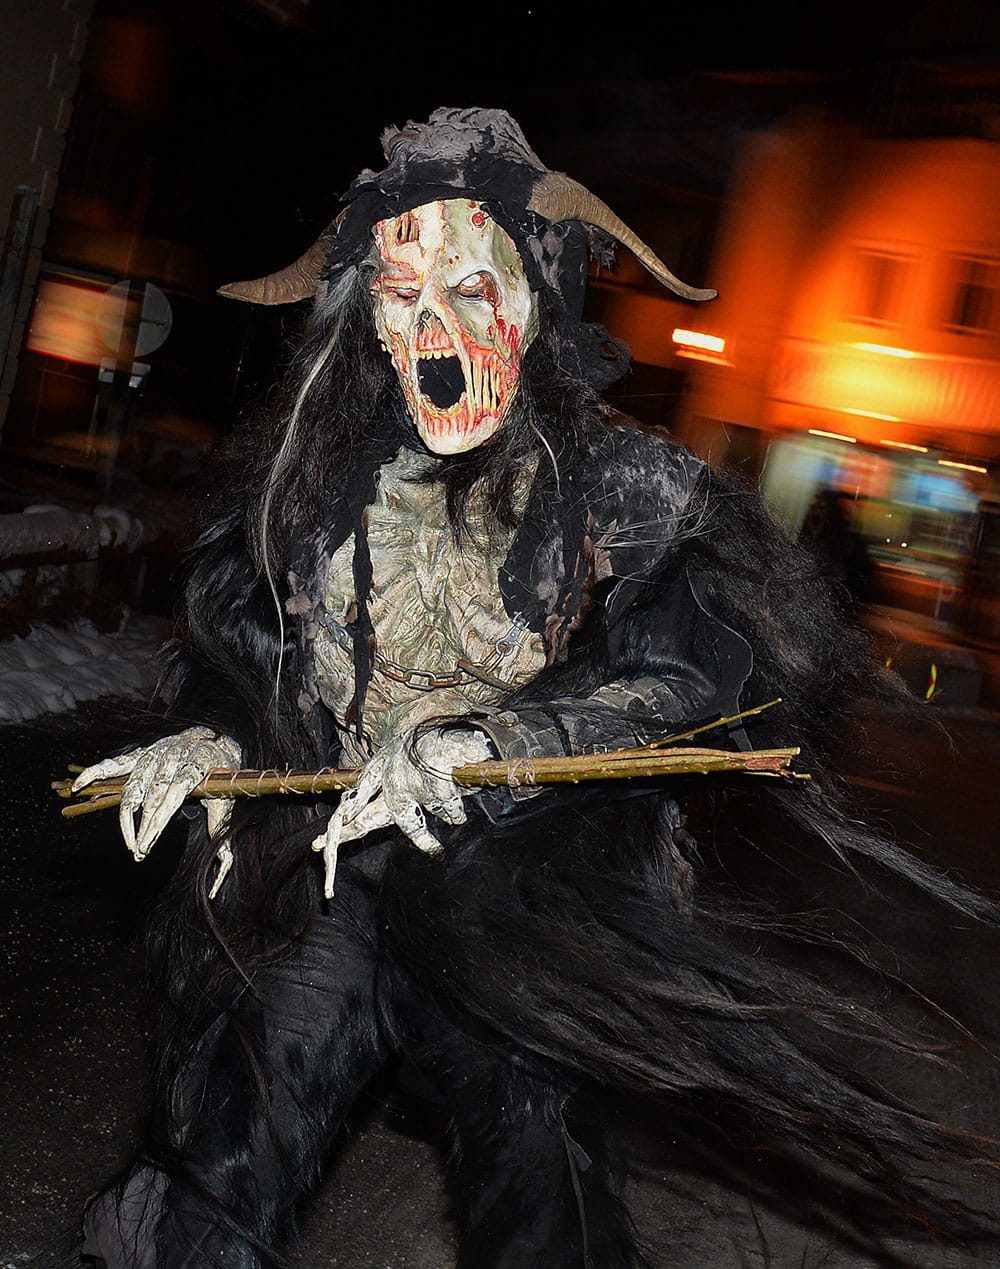 A MAN DRESSED AS A KRAMPUS, THE COMPANION OF ST. NICHOLAS AND ONE OF AUSTRIA`S UNIQUE ADVENT TRADITIONS, MAKES HIS WAY DURING A TRADITIONAL KRAMPUS PROCESSION IN LOFER, AUSTRIAN PROVINCE OF SALZBURG.